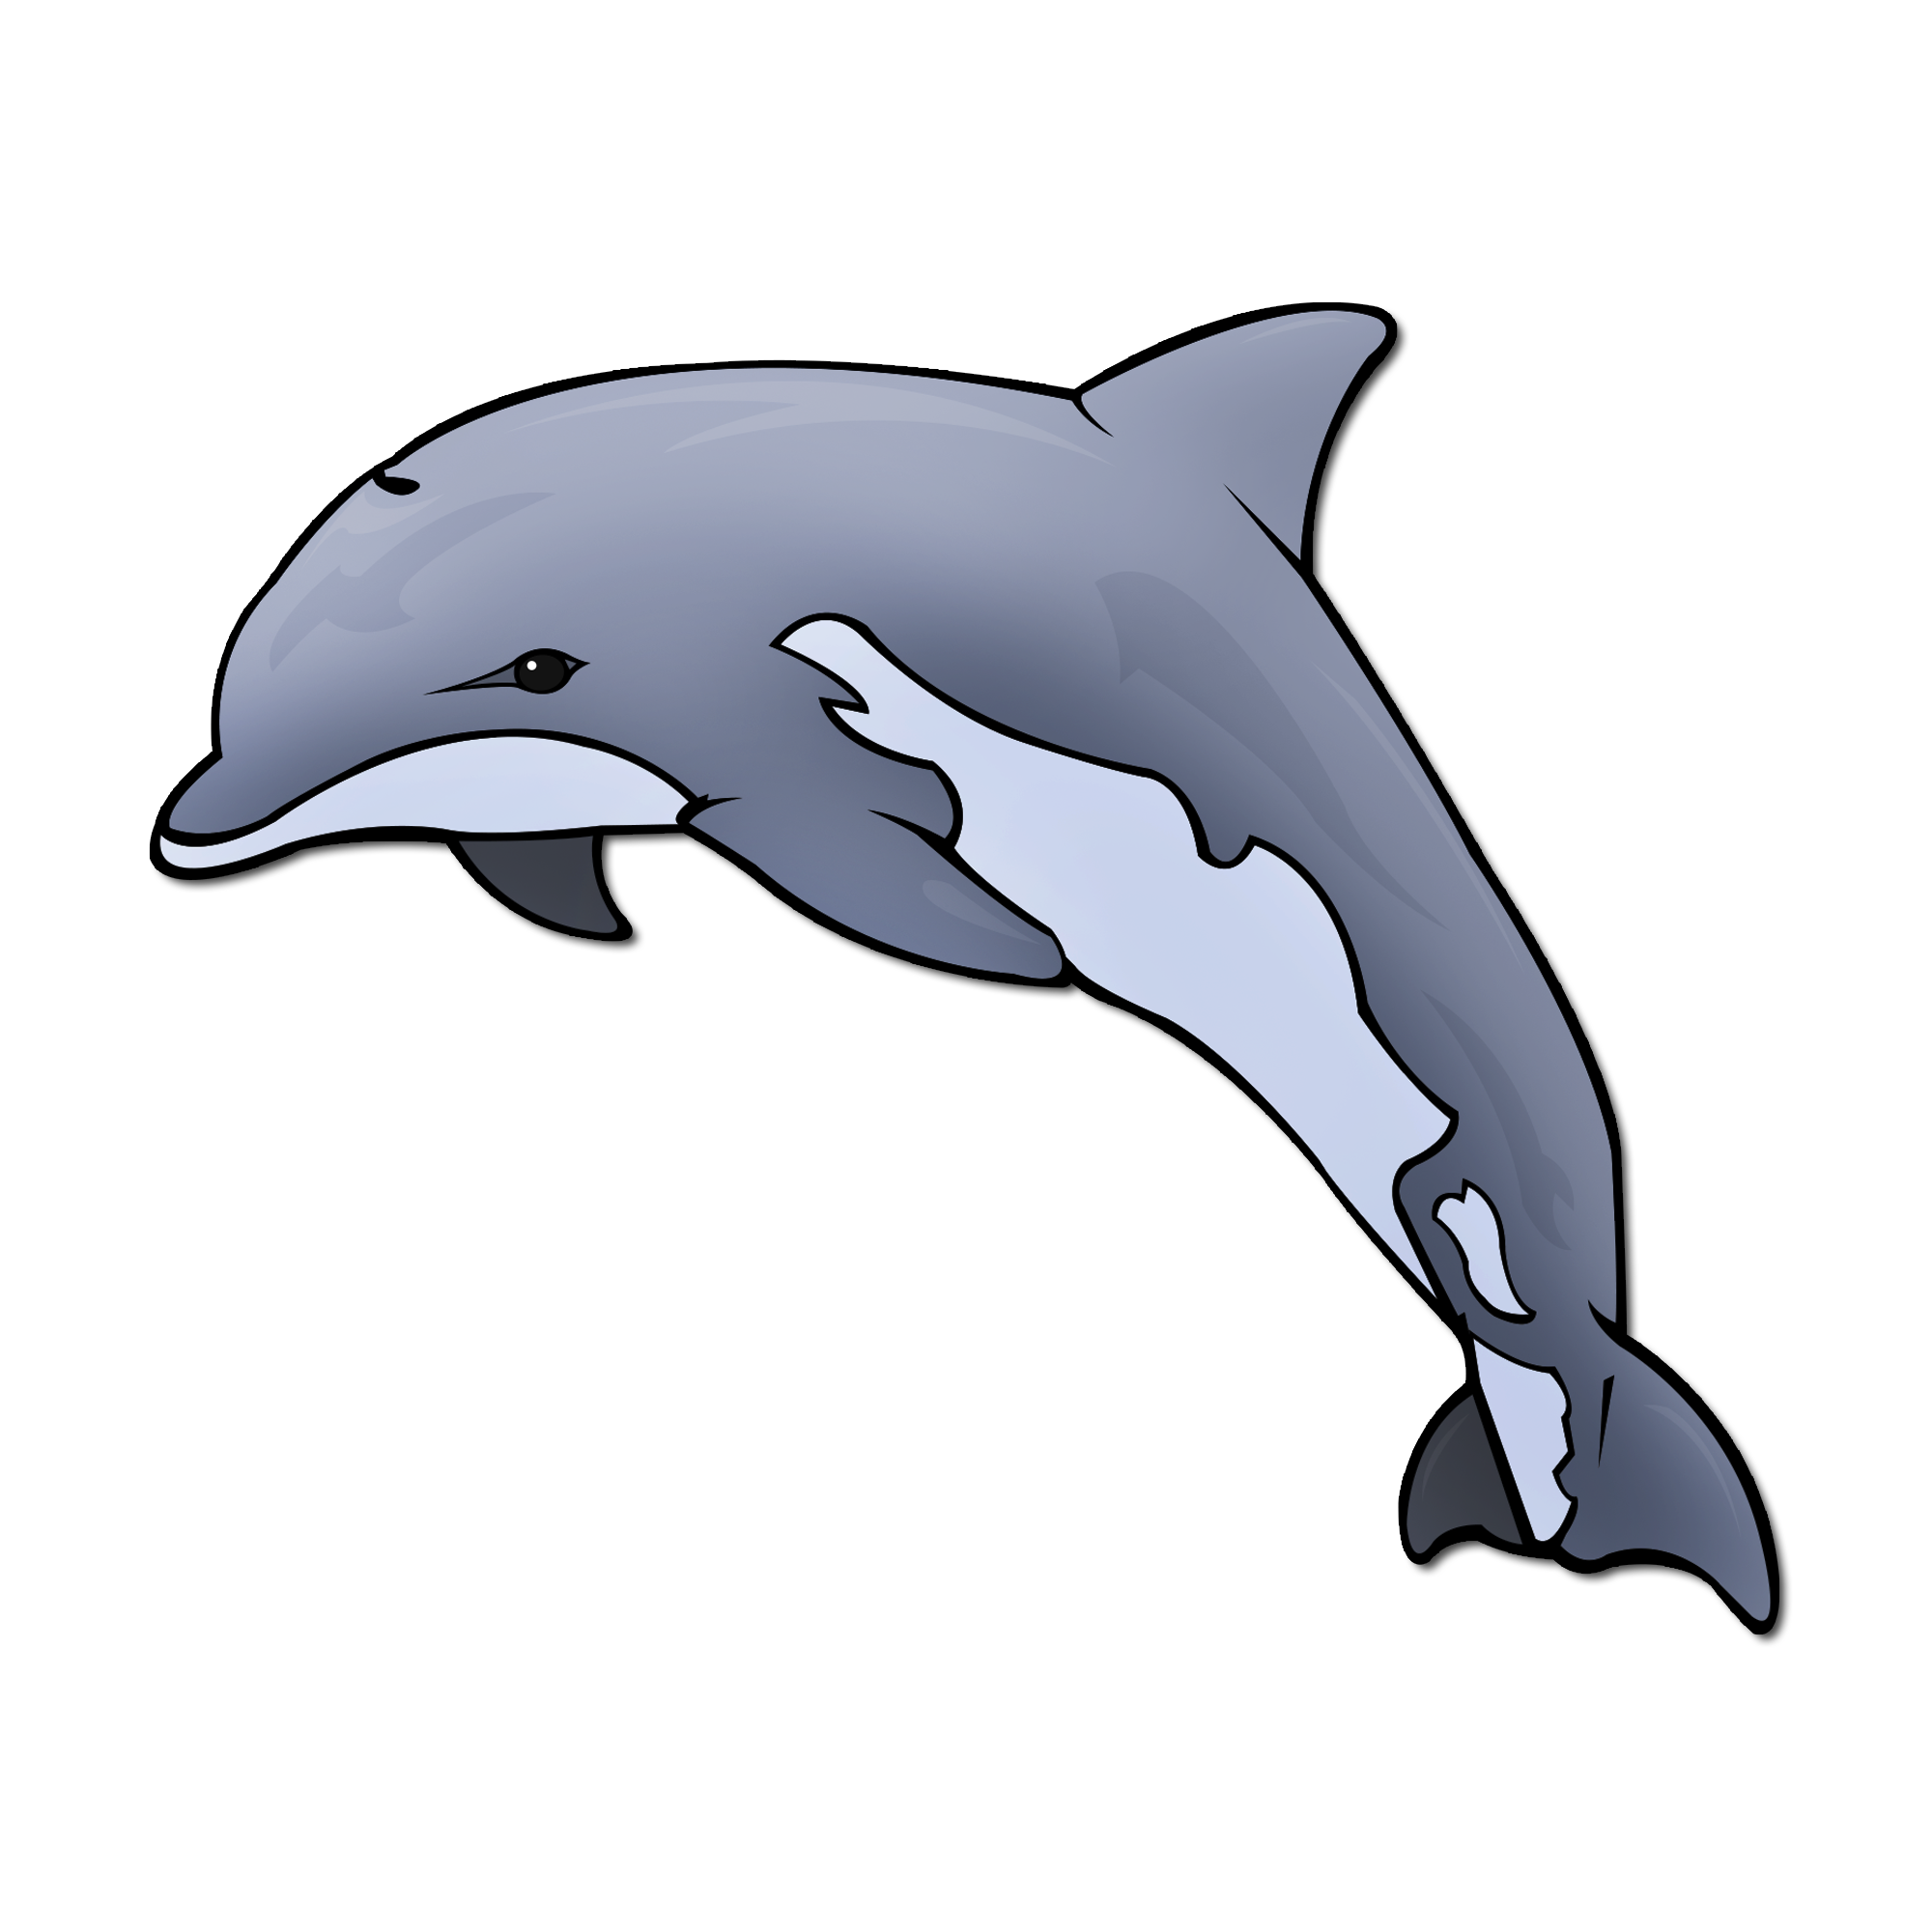 Dolphin clipart maui dolphin. Picturae database detail download